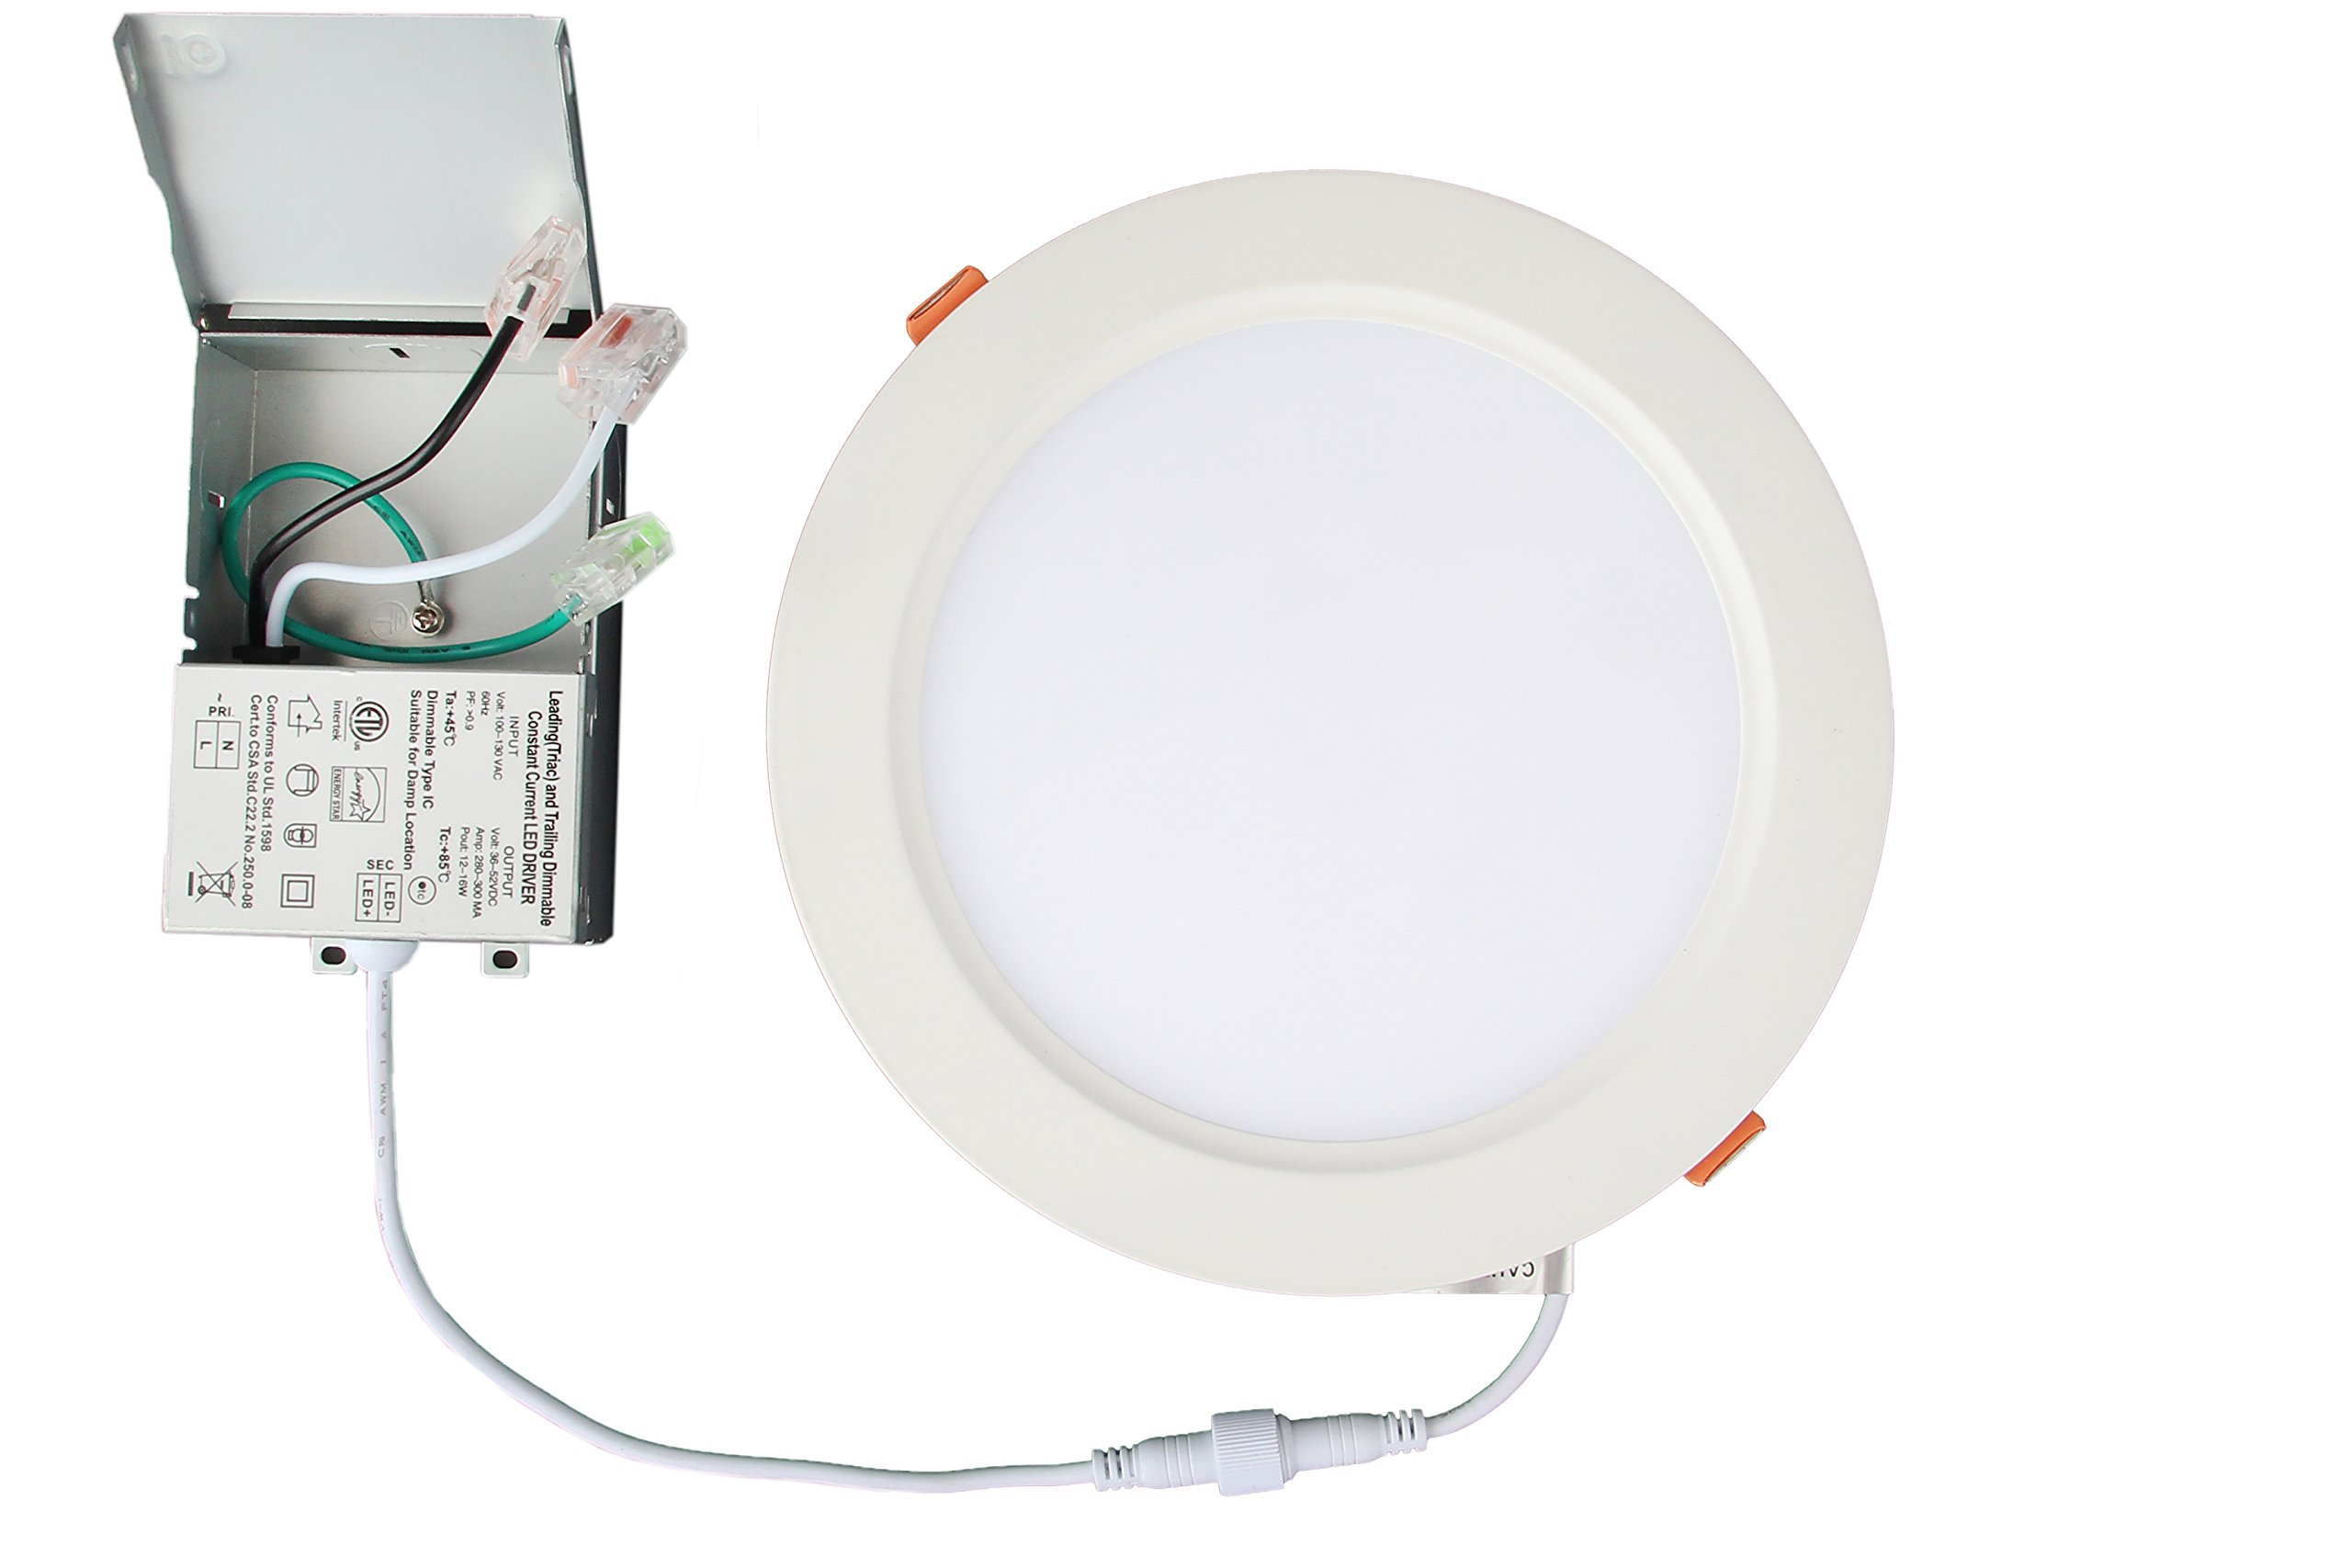 P-tec 6'' Ultra-Thin LED Recessed Downlight, 3000K Warm White, 16 Watt, 1200 Lumens, 90+ CRI, IC-Rated & Wet-Rated